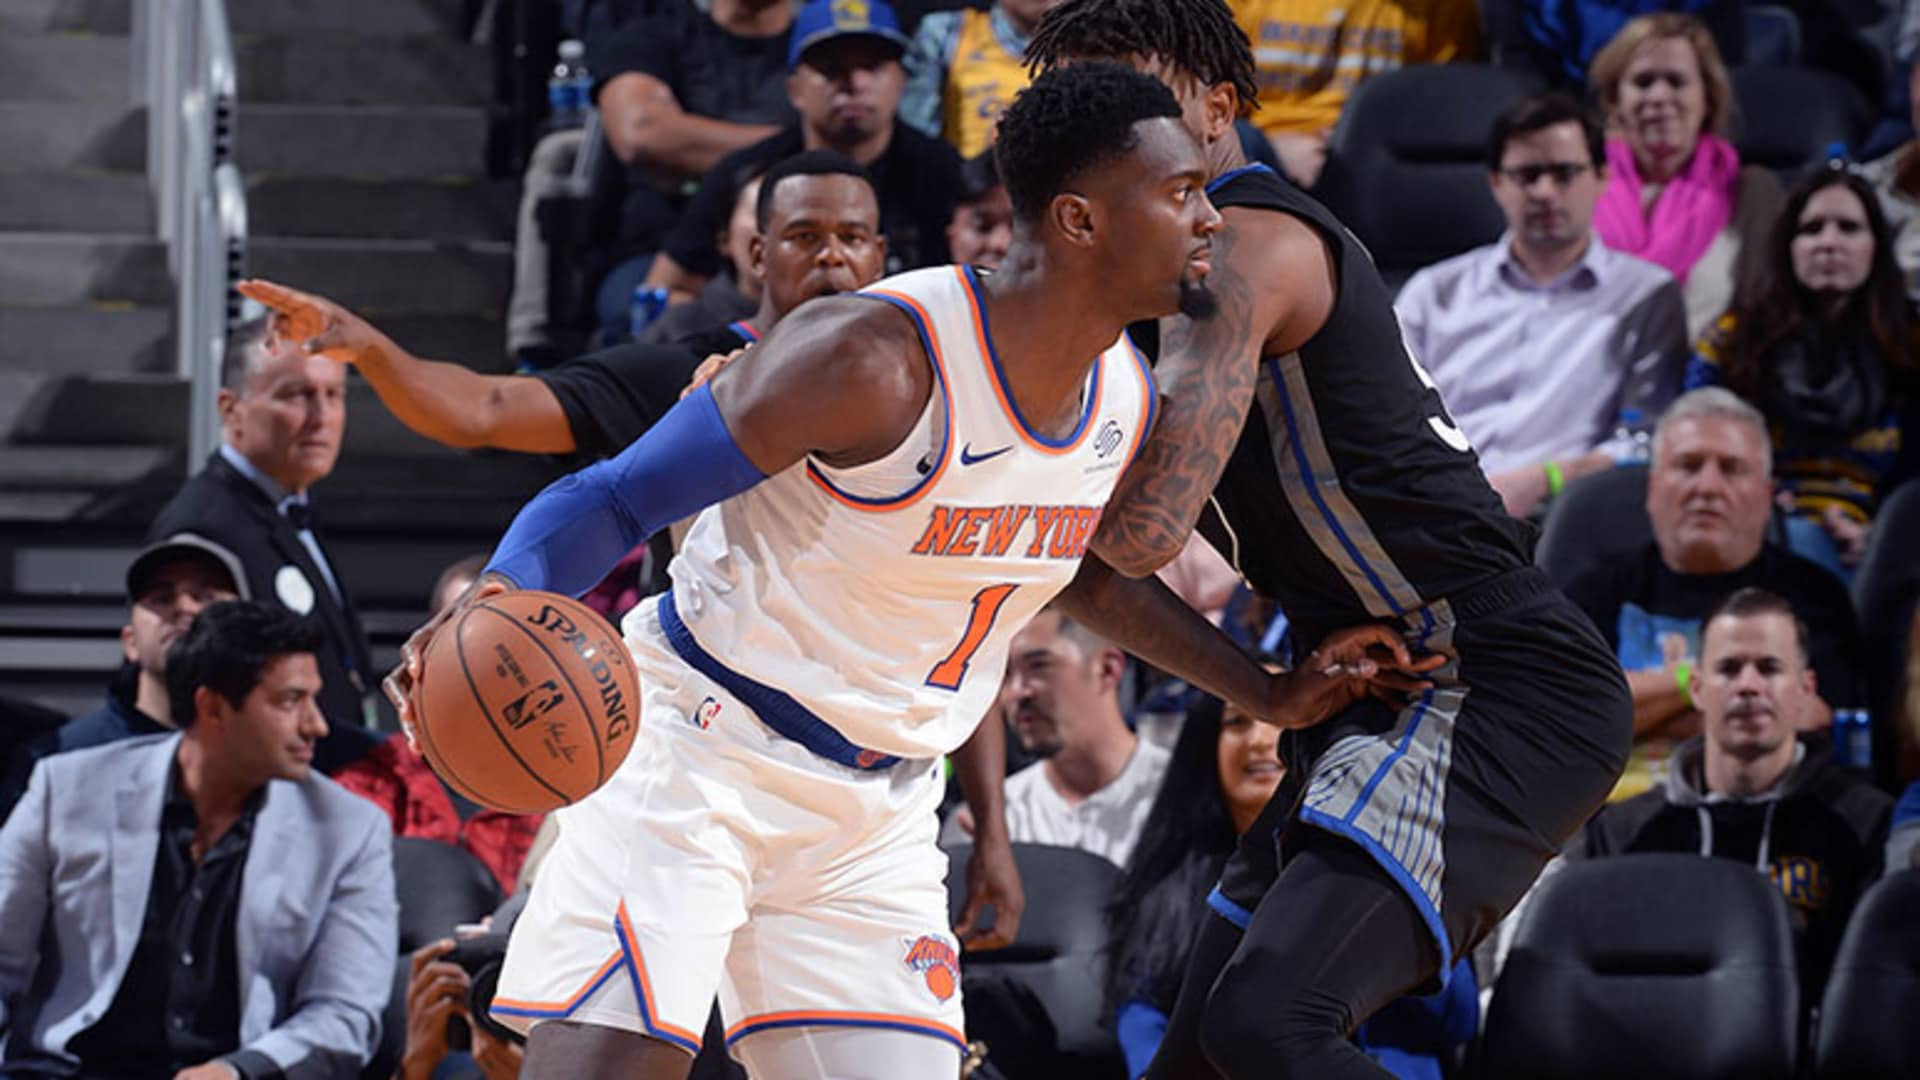 Highlights: Bobby Portis (15 Points) | Knicks @ Warriors